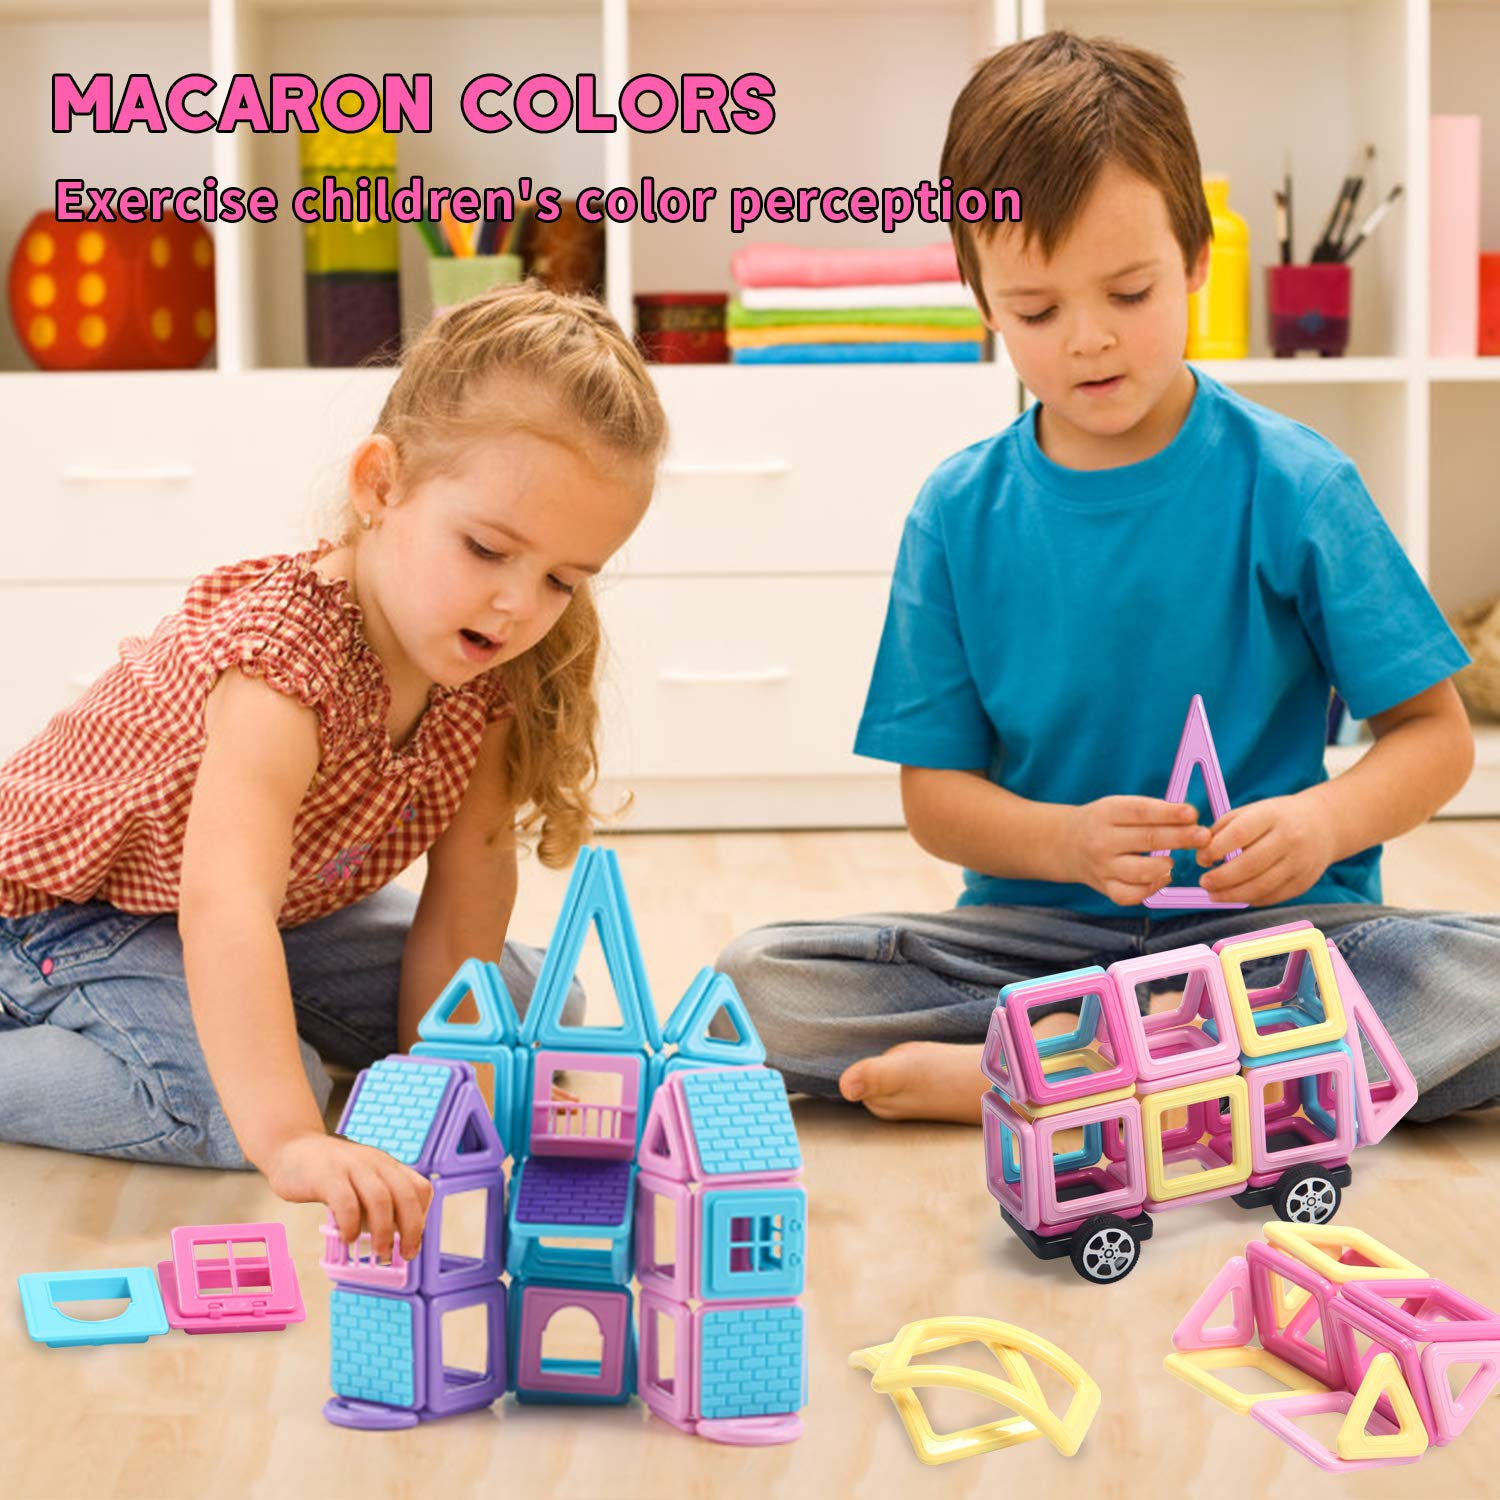 HOMOFY 124PCS Castle Magnetic Blocks Toys for Kids -3D Macaron Colors Learning & Development Building Blocks Figure Kits Toys for 3+ Years Old Girls Boys Toddlers by HOMOFY (Image #3)